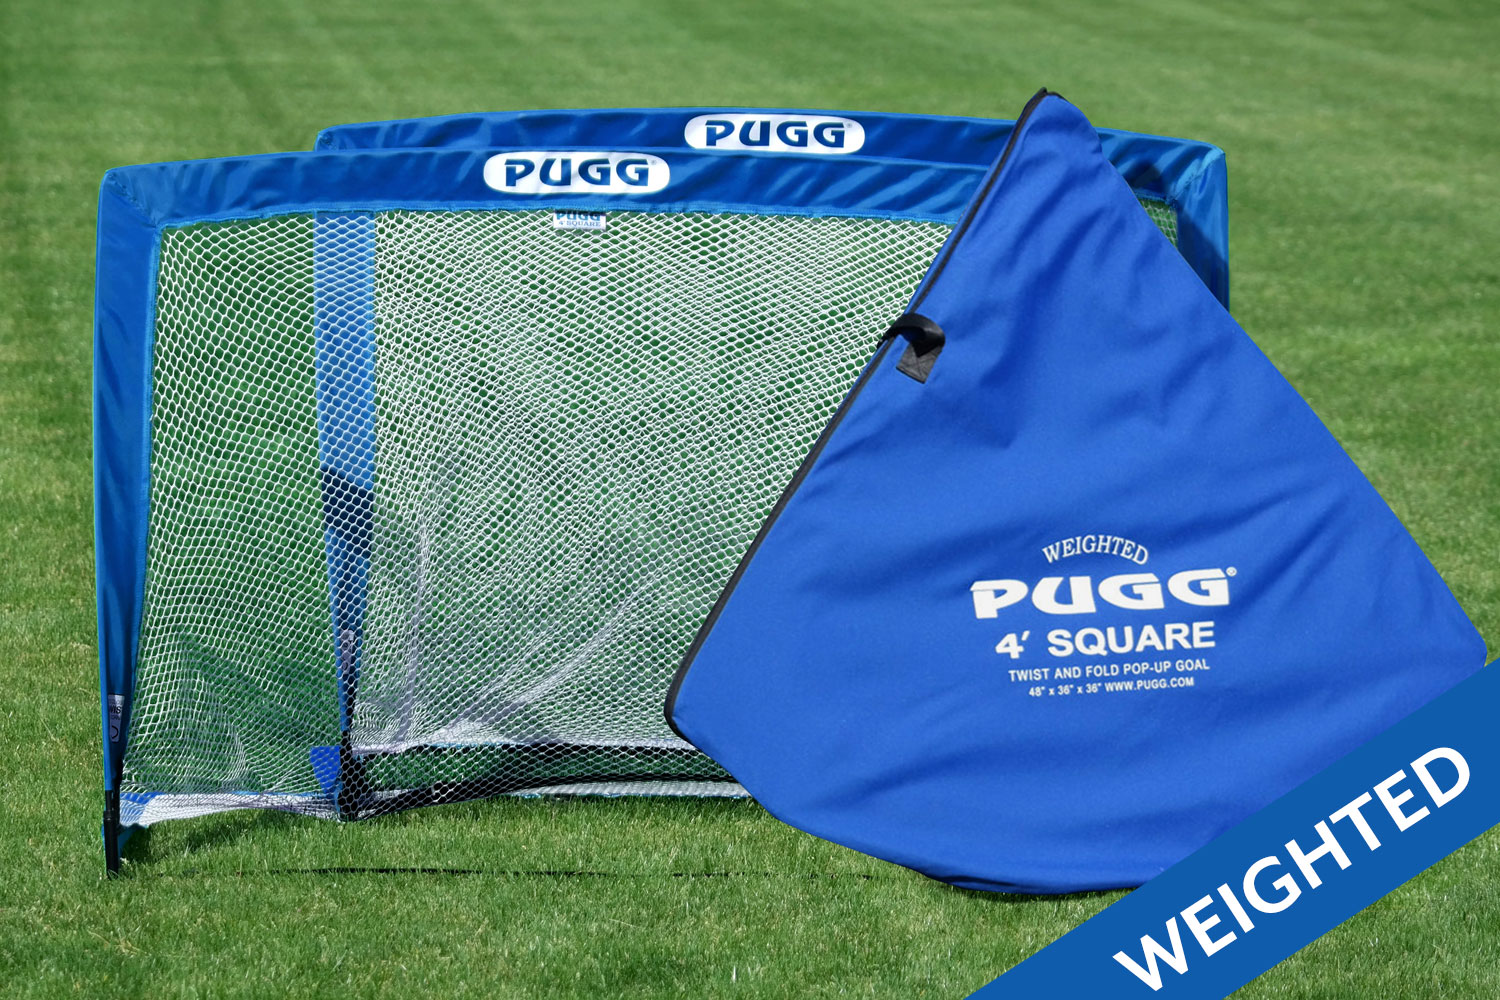 Pugg Ultra U90 Weighted 4 Footer Pop-Up (Pair)